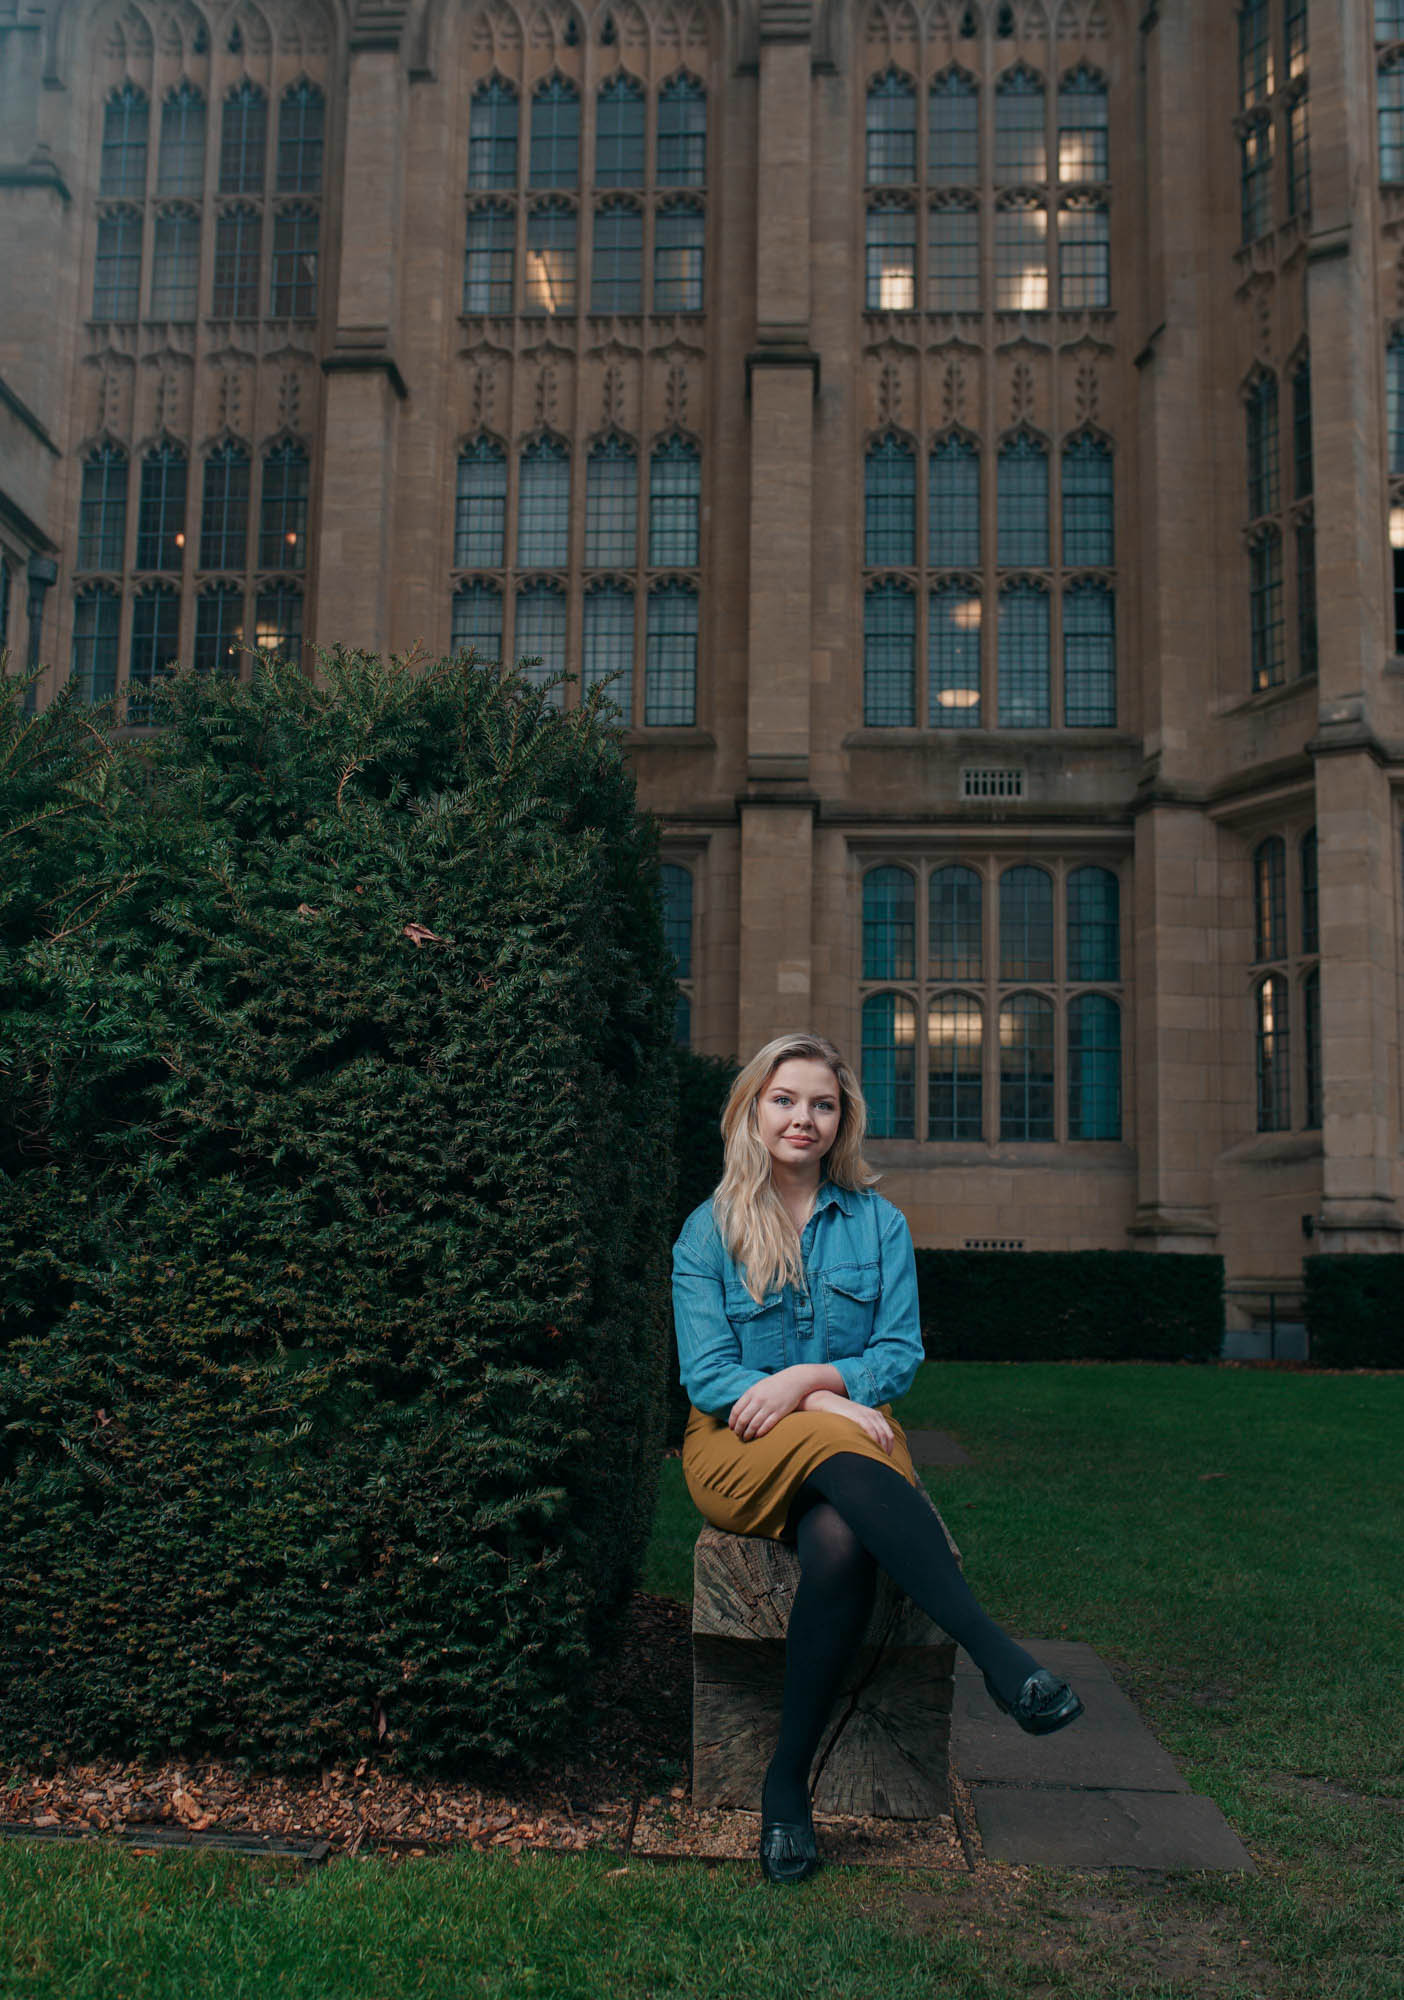 Bristol University student portraiture